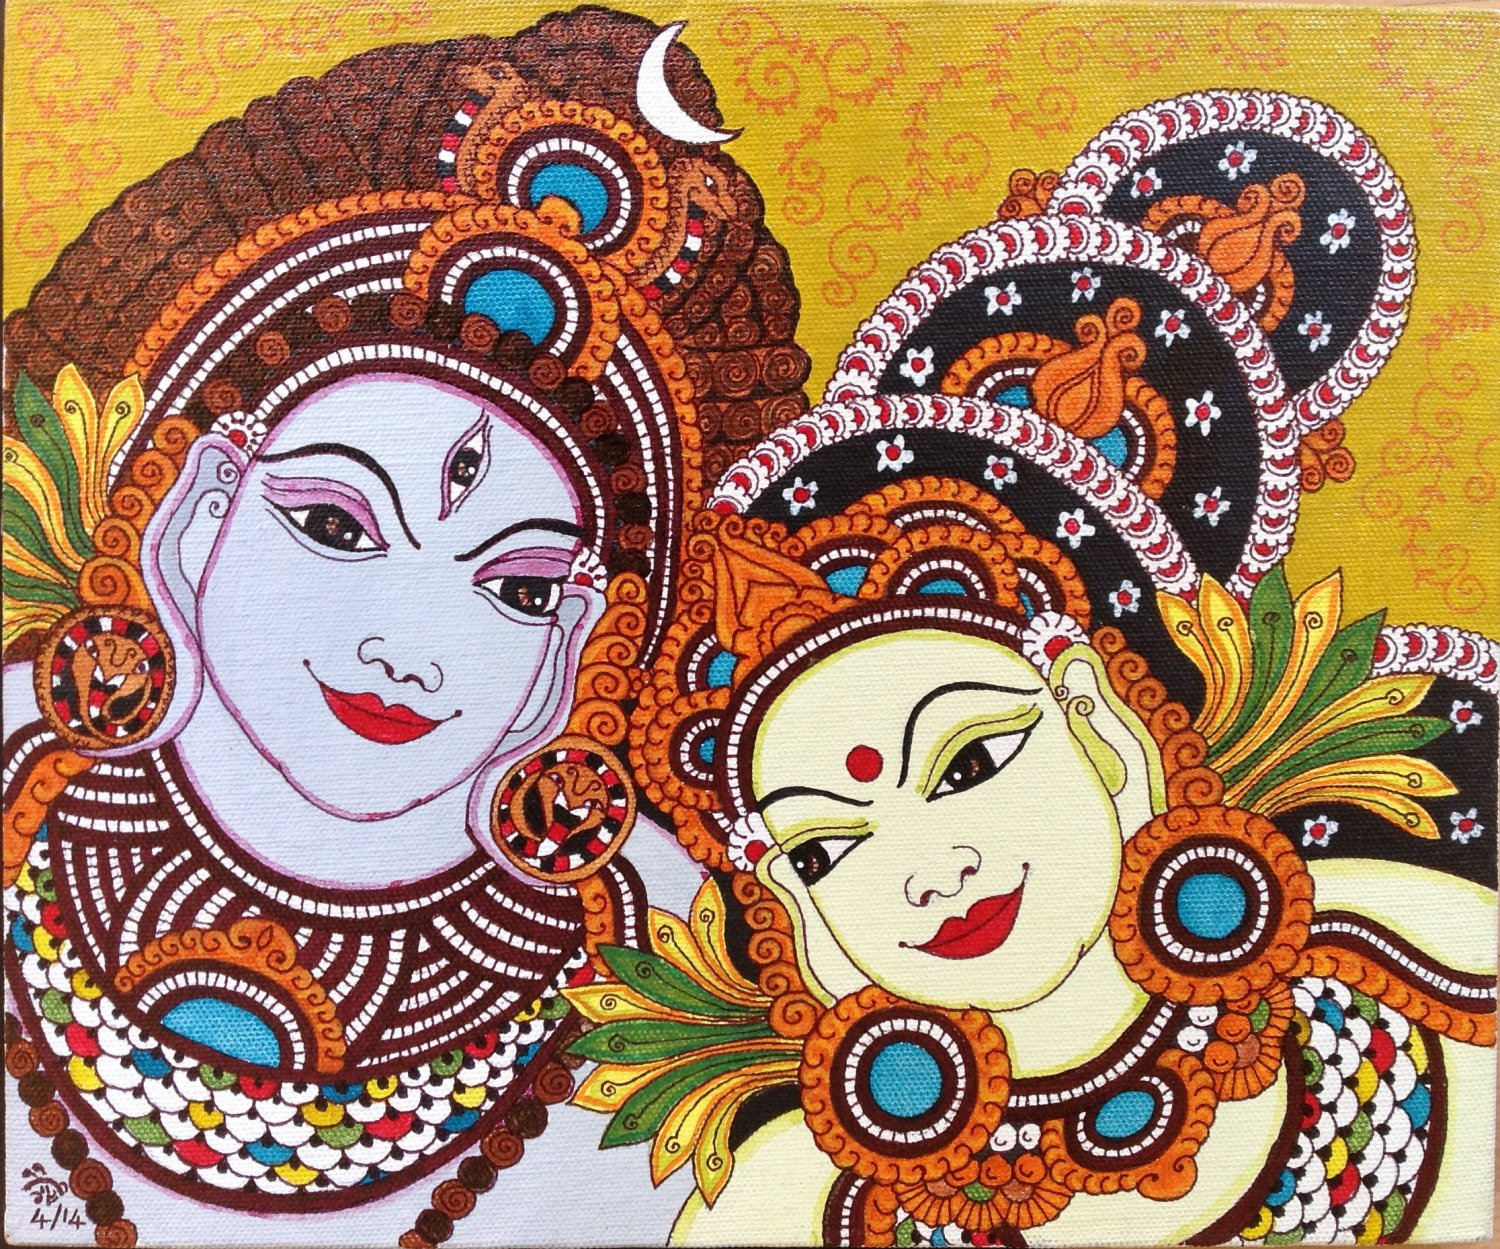 Kerala Mural Parvati Shiva Painting Handmade South Indian Hindu Ethnic Decor Art